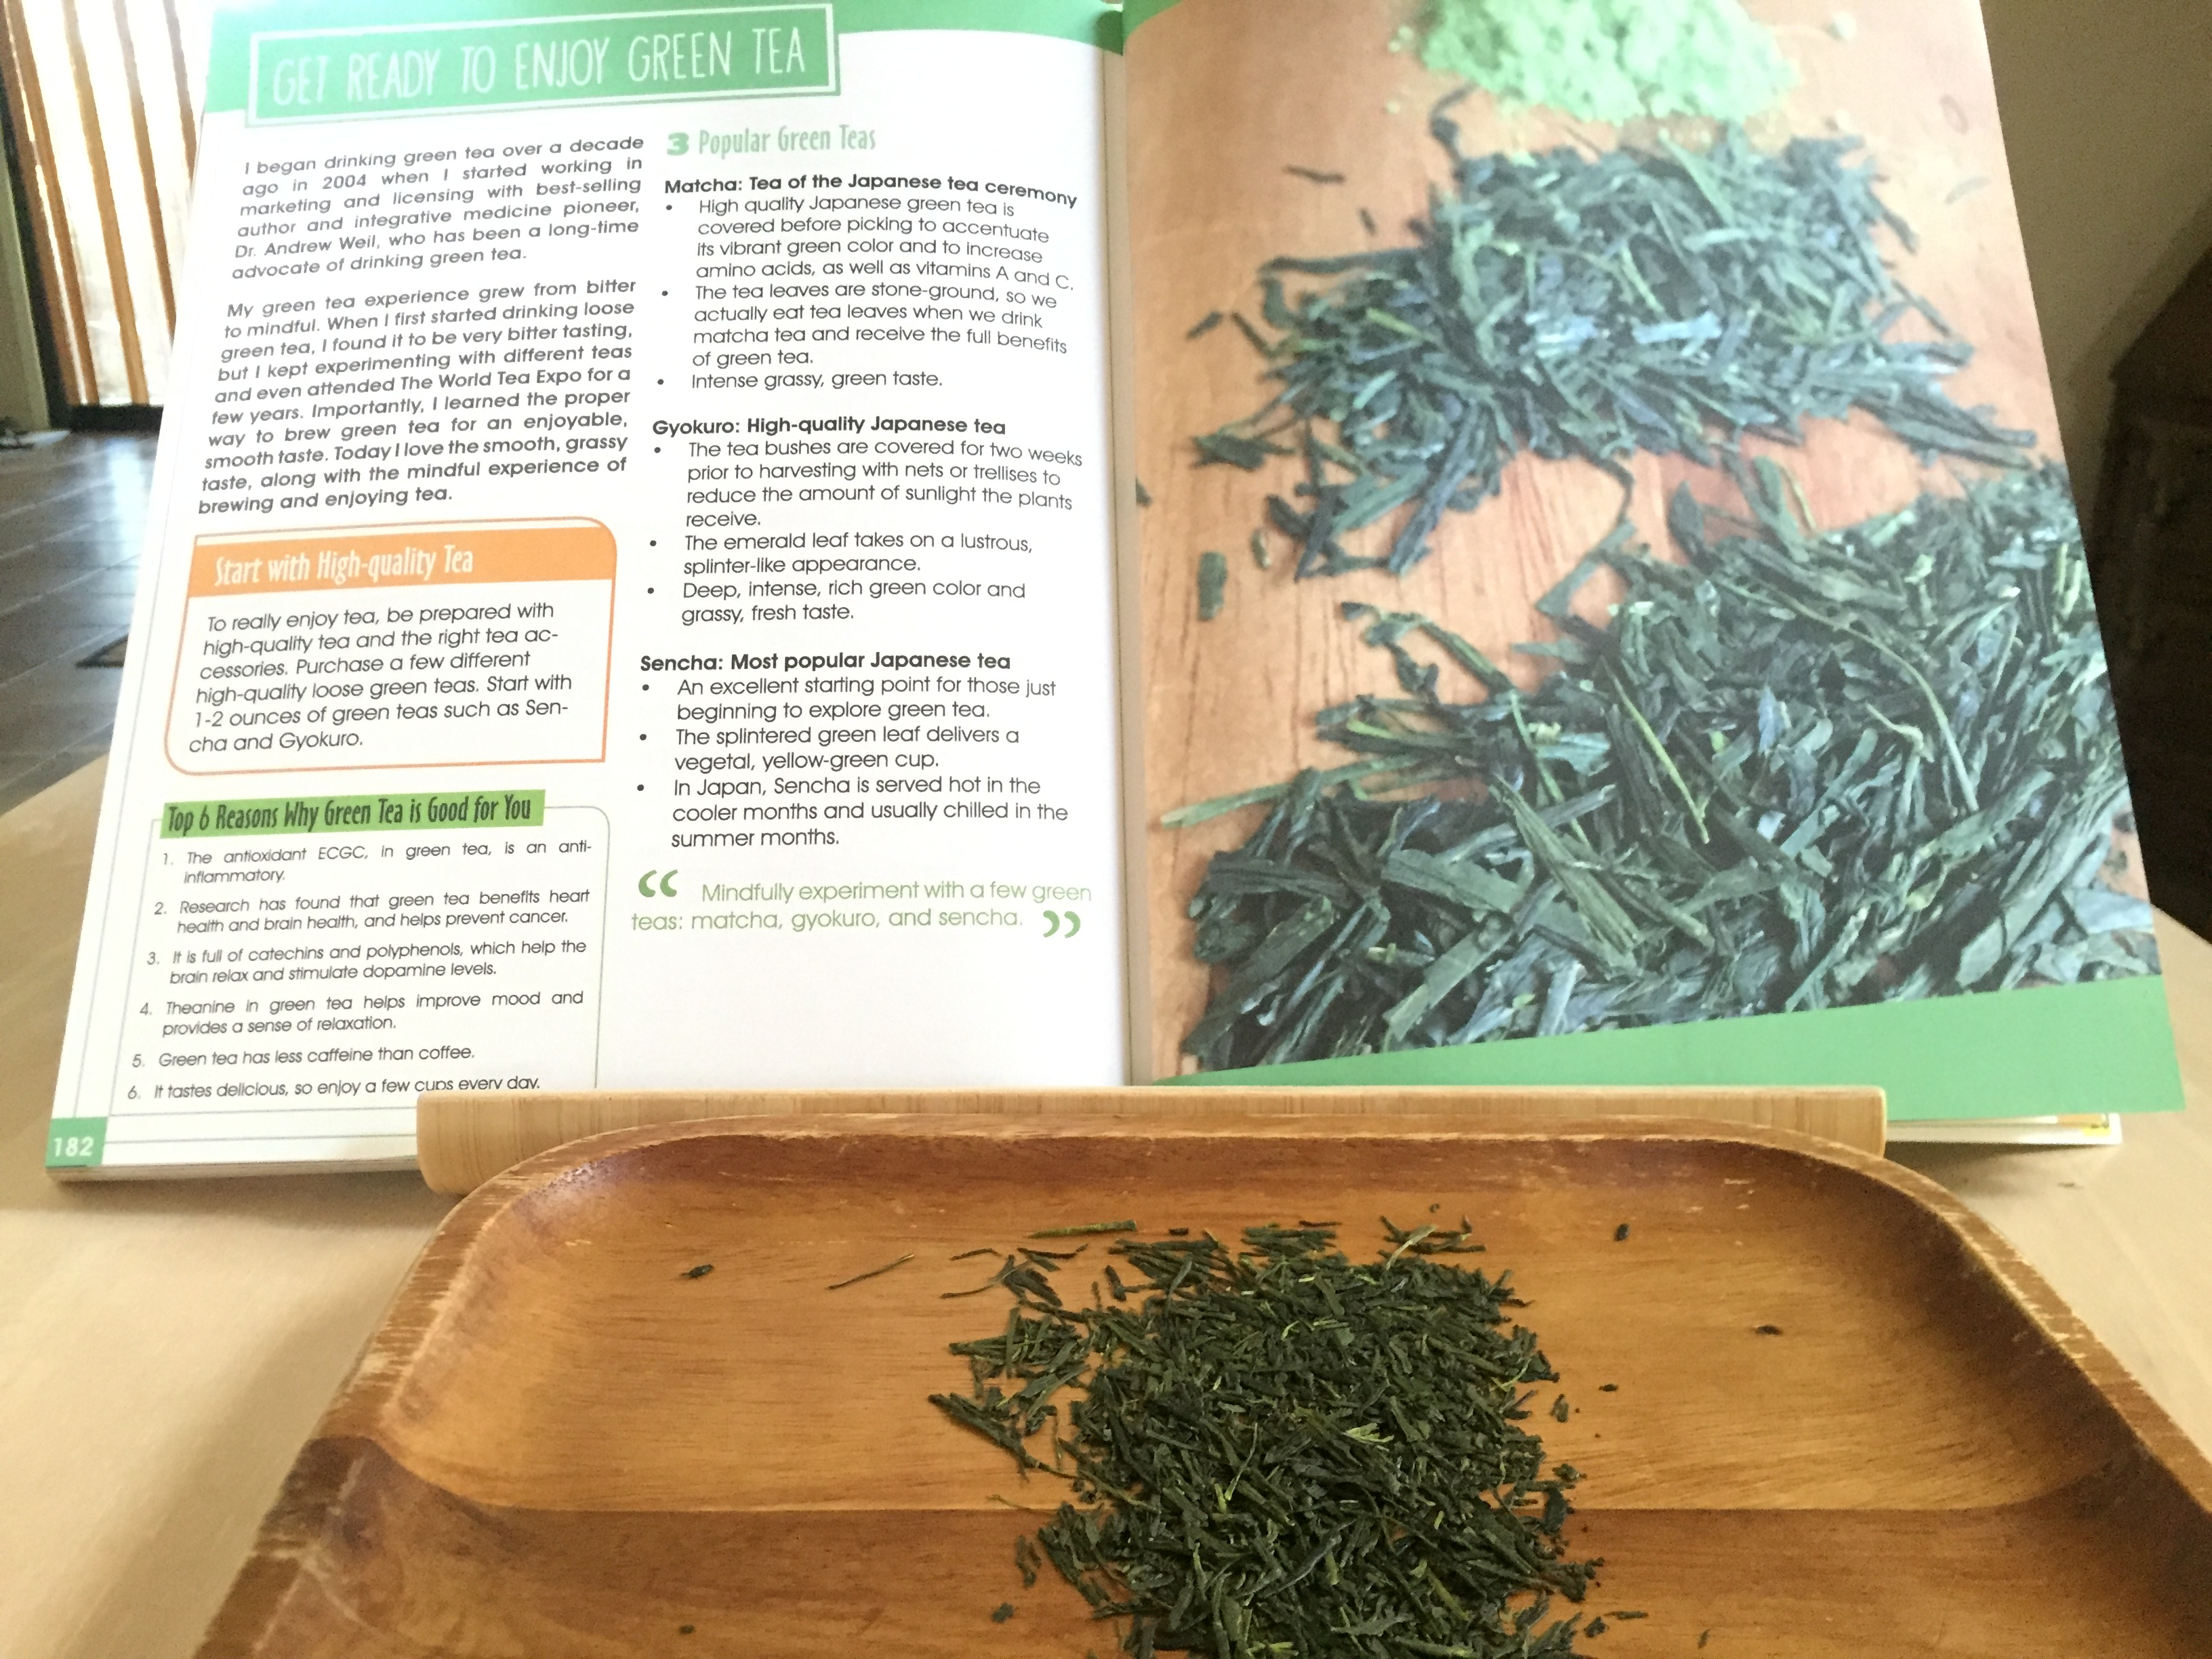 A New View Of Healthy Eating 5 Simple Steps To Steep The Perfect Green Tea A New View Of Healthy Eating